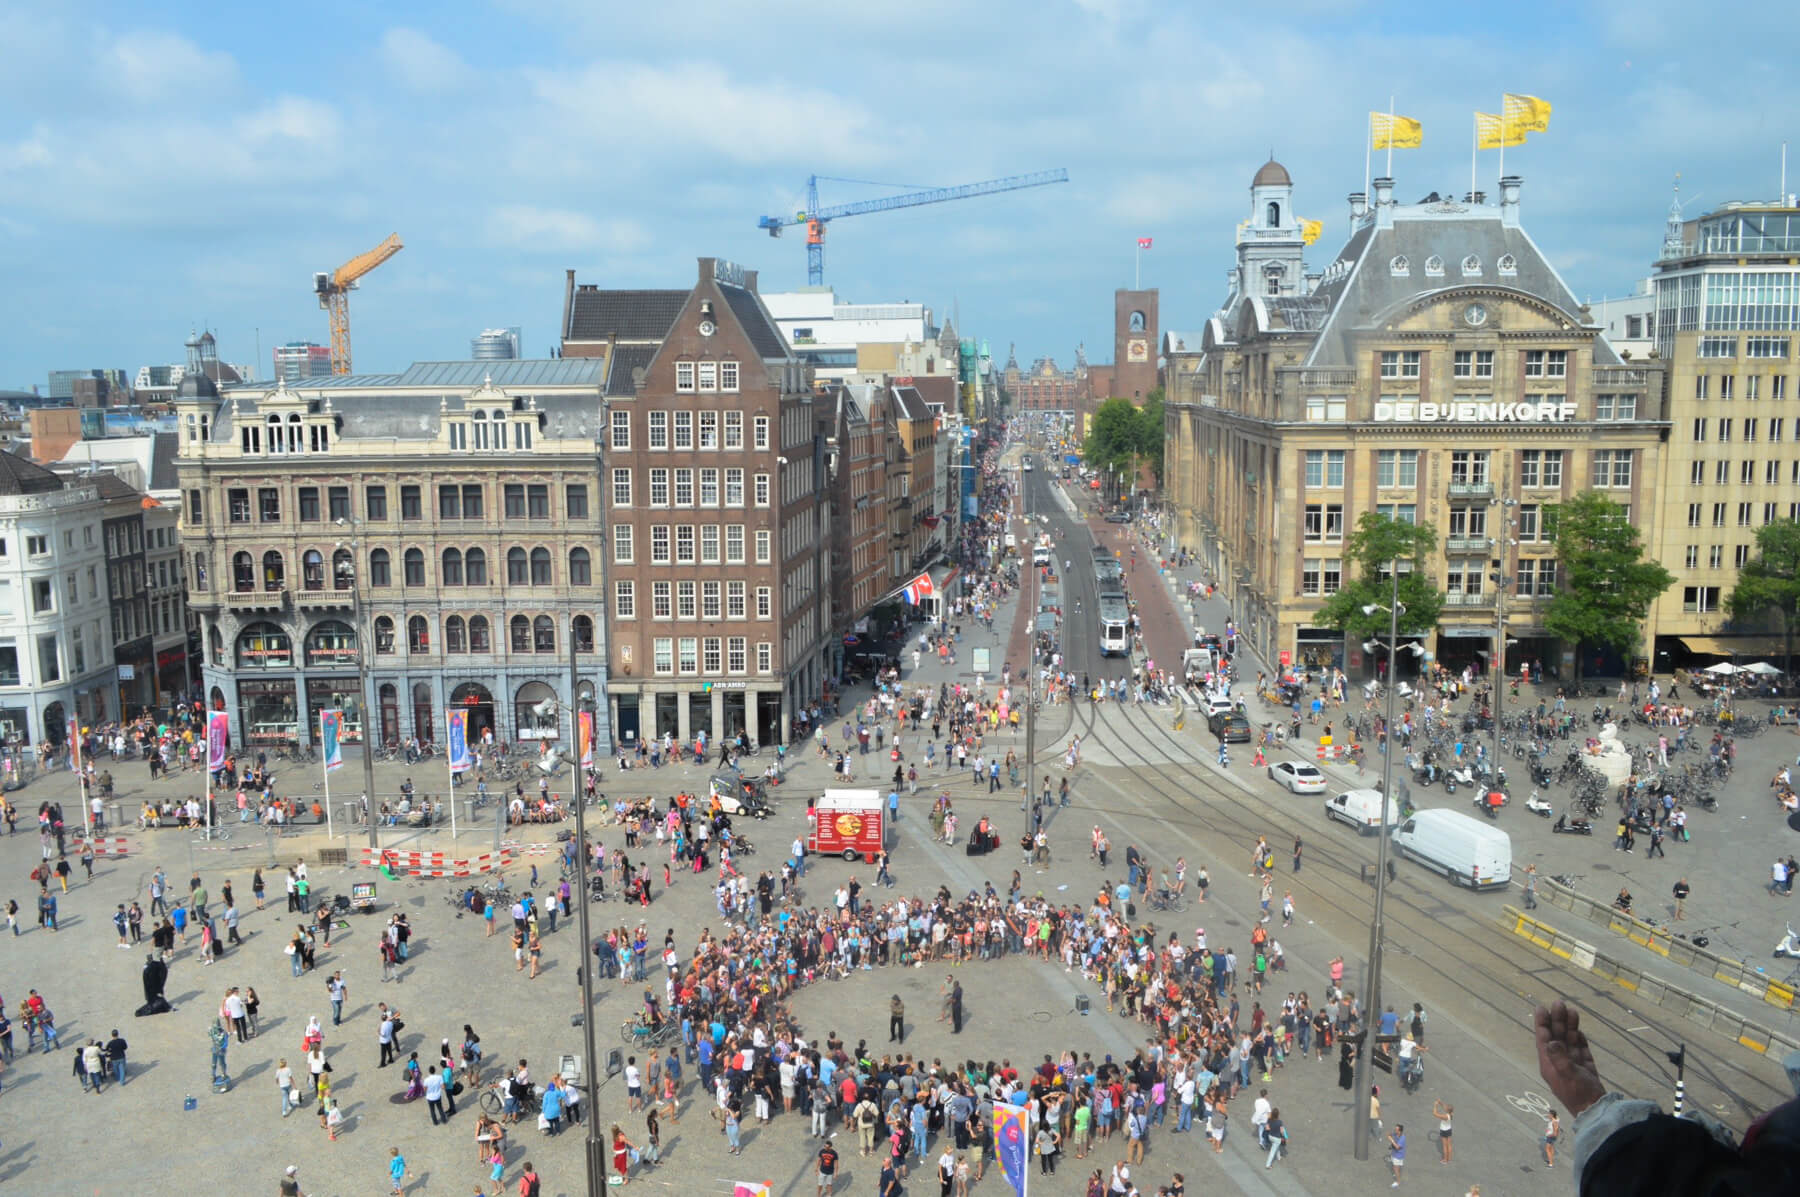 Dam Square in Amsterdam, with a huge circle of people in the middle